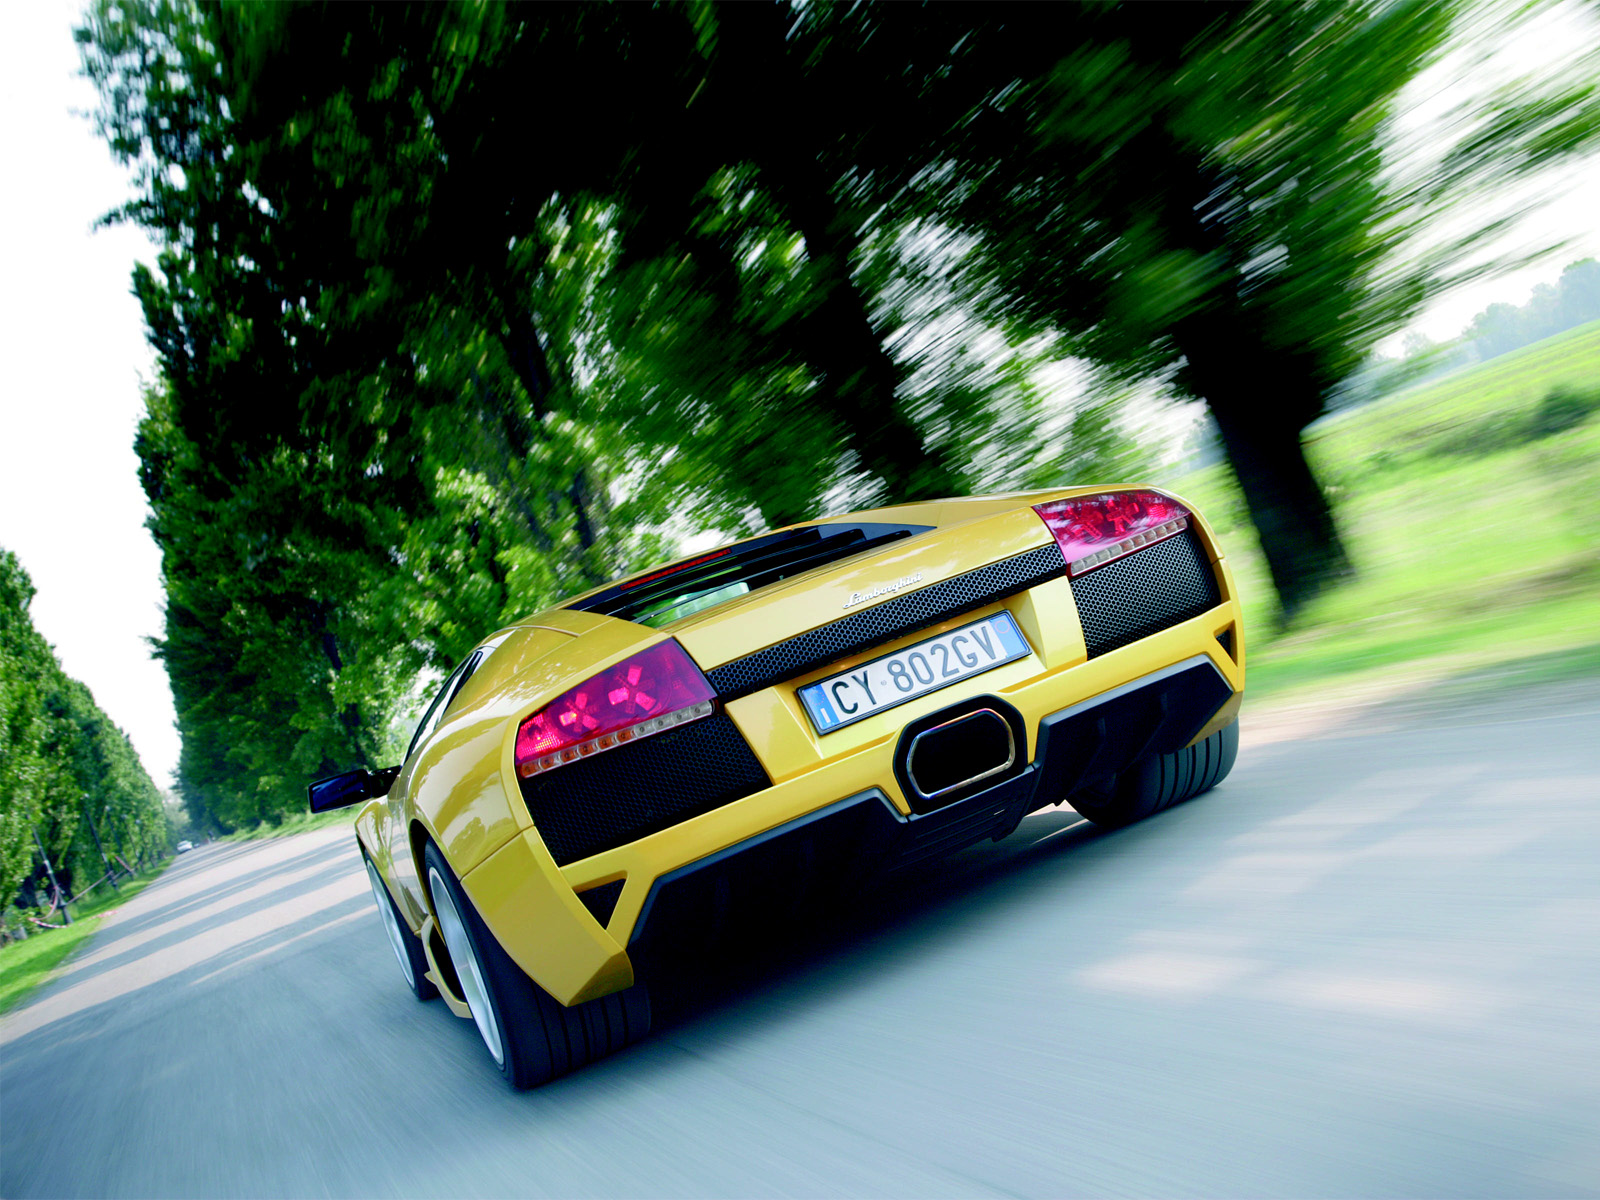 Cool car wallpaper high definition 2393